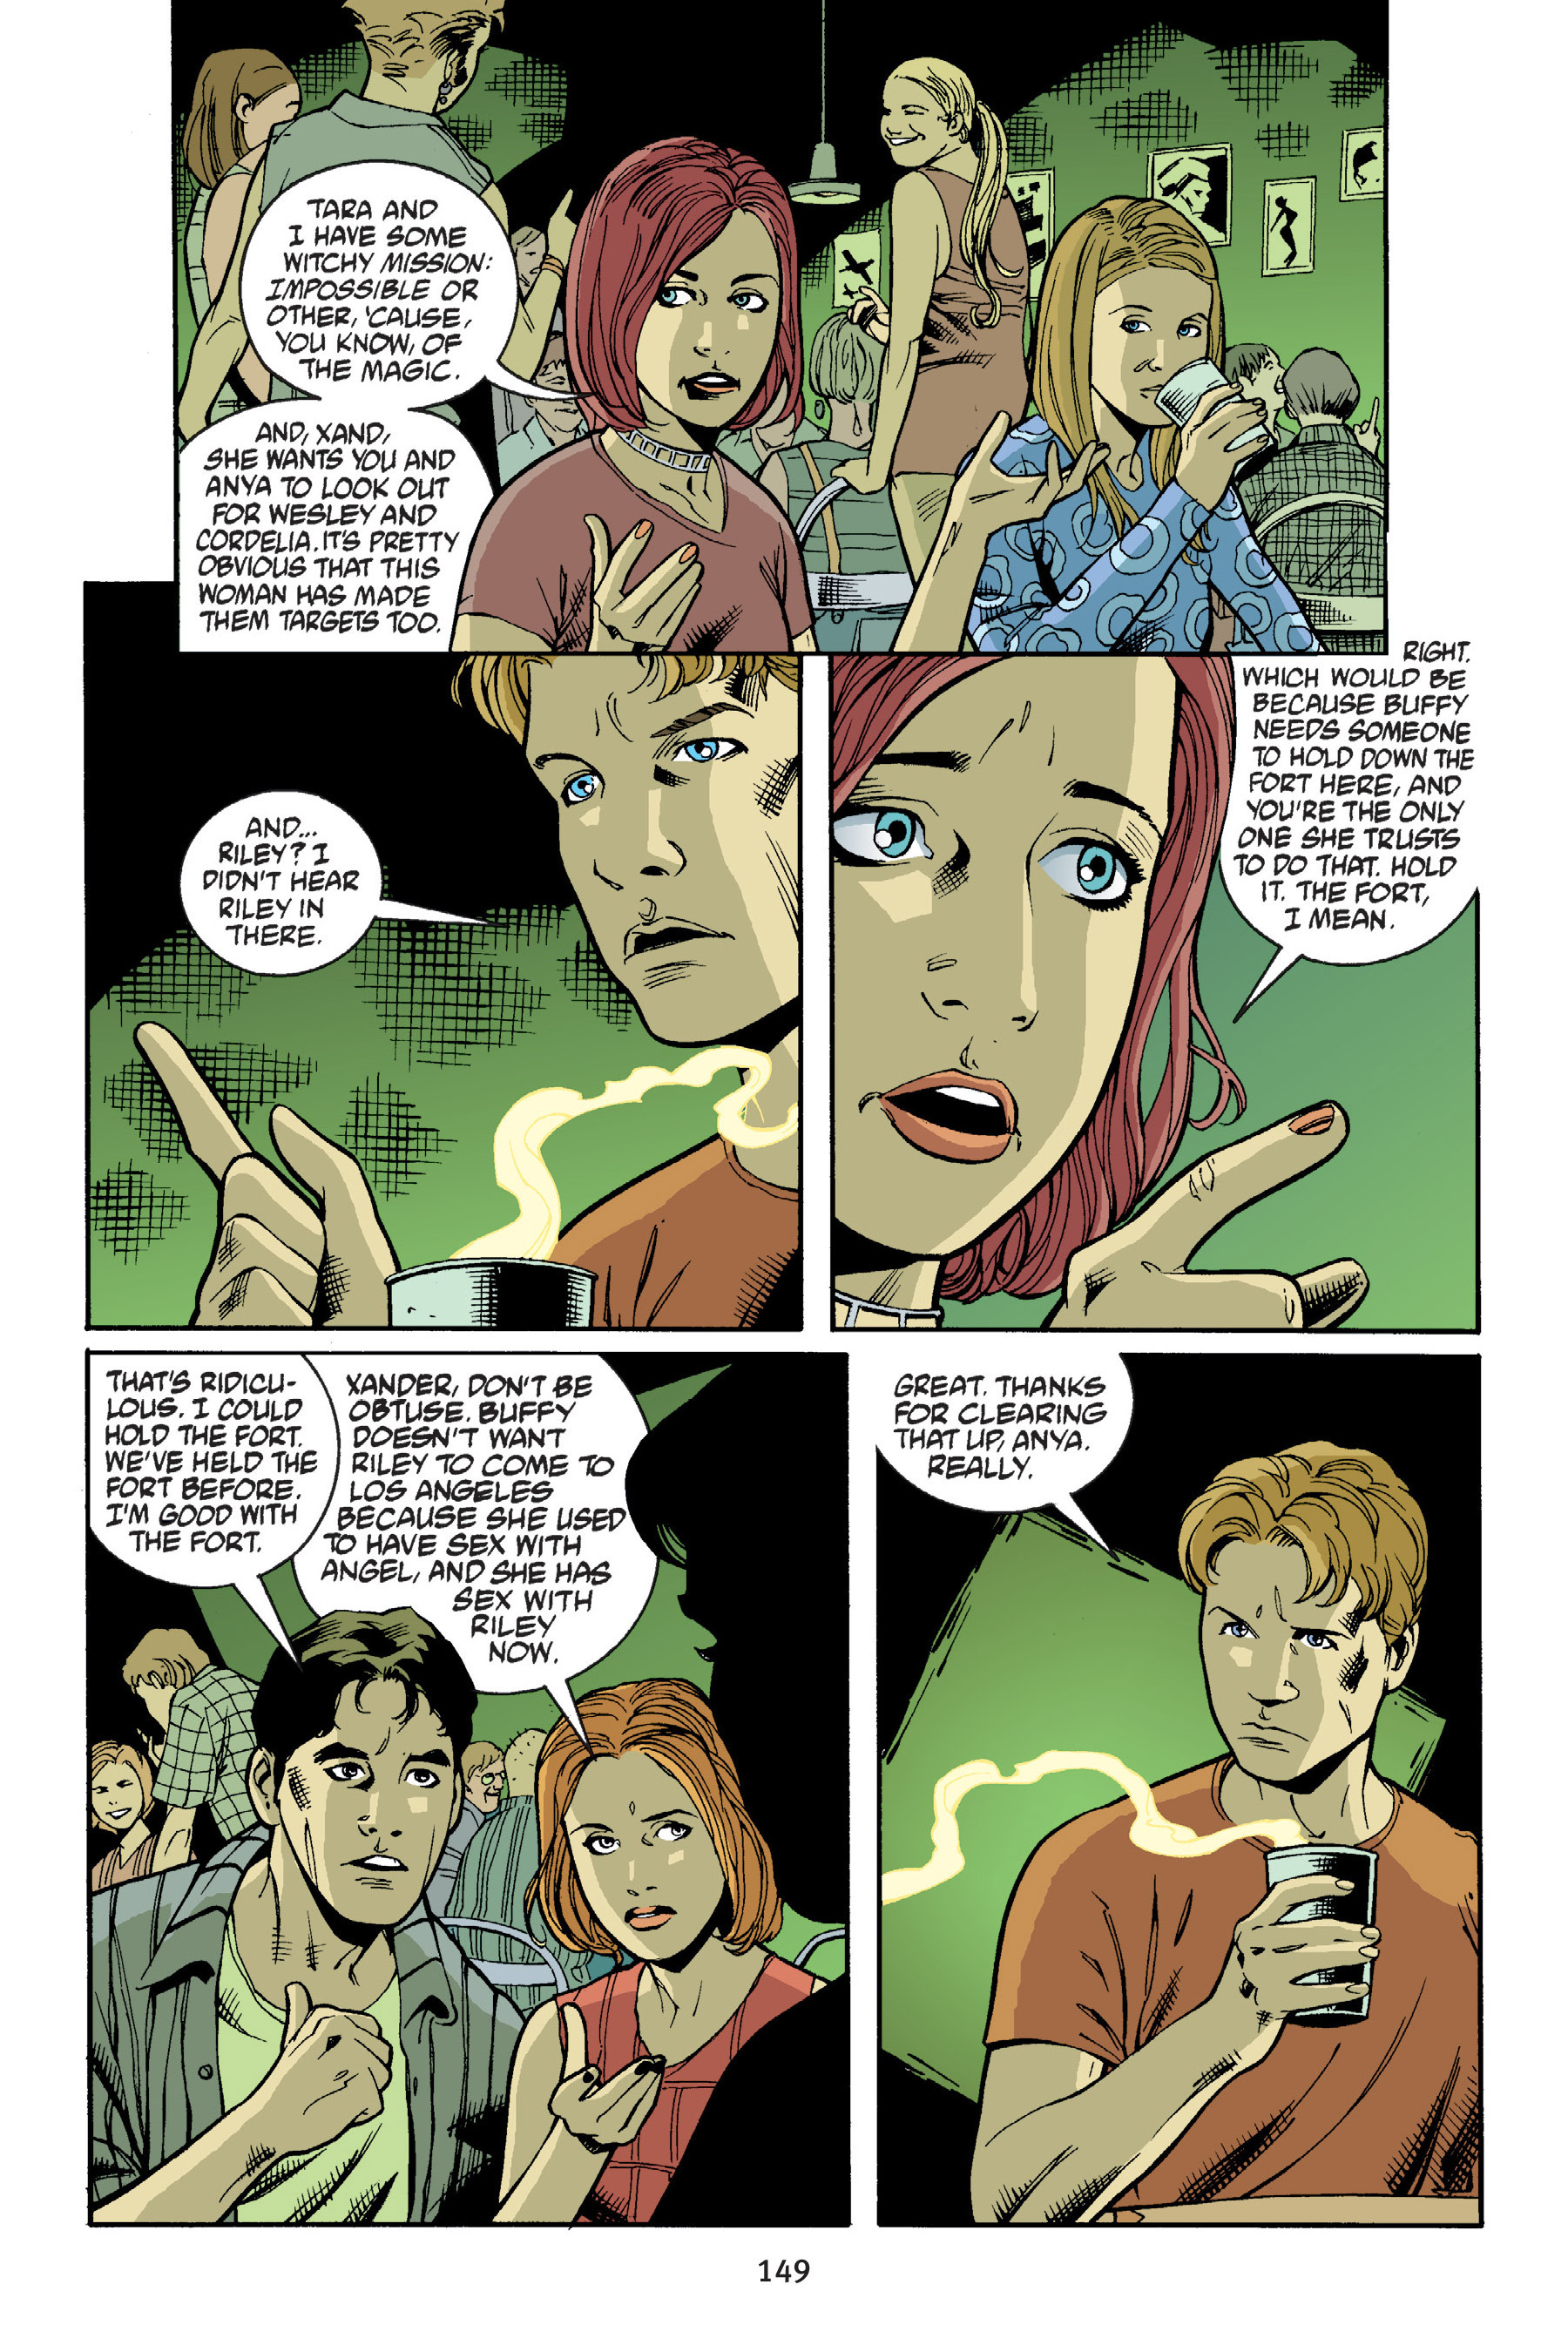 Read online Buffy the Vampire Slayer: Omnibus comic -  Issue # TPB 6 - 149